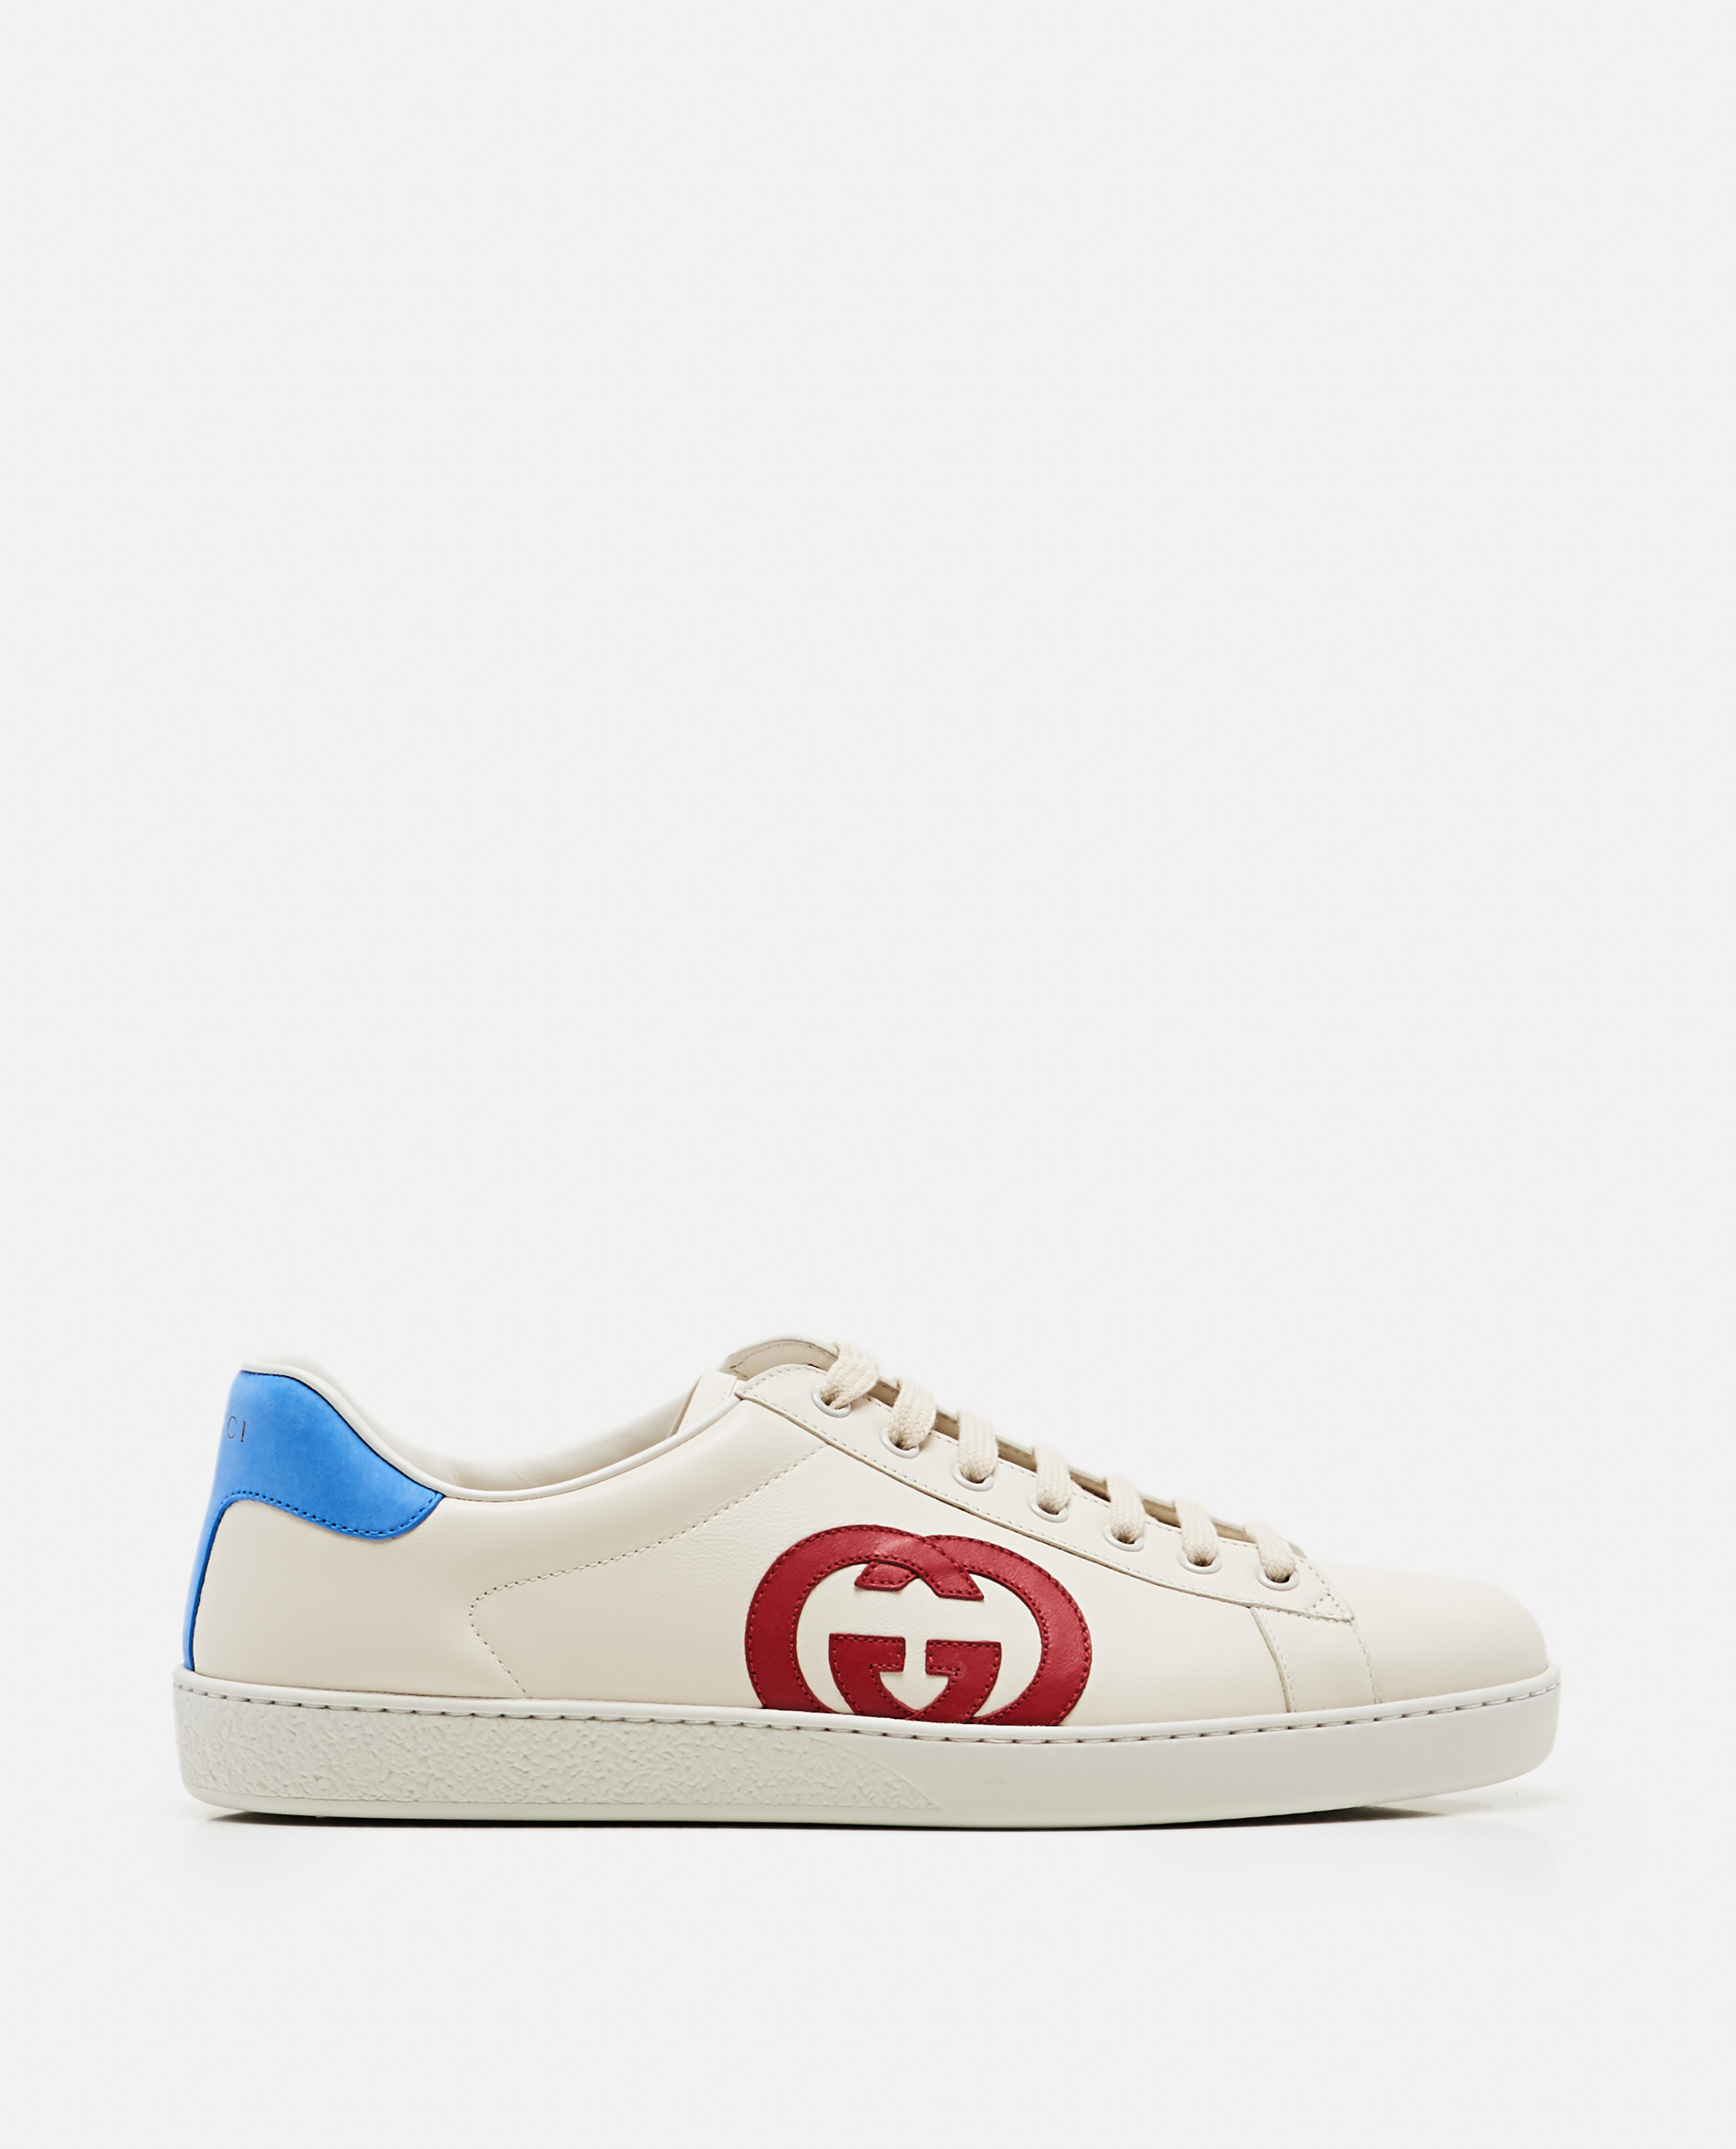 Ace mens sneaker with GG